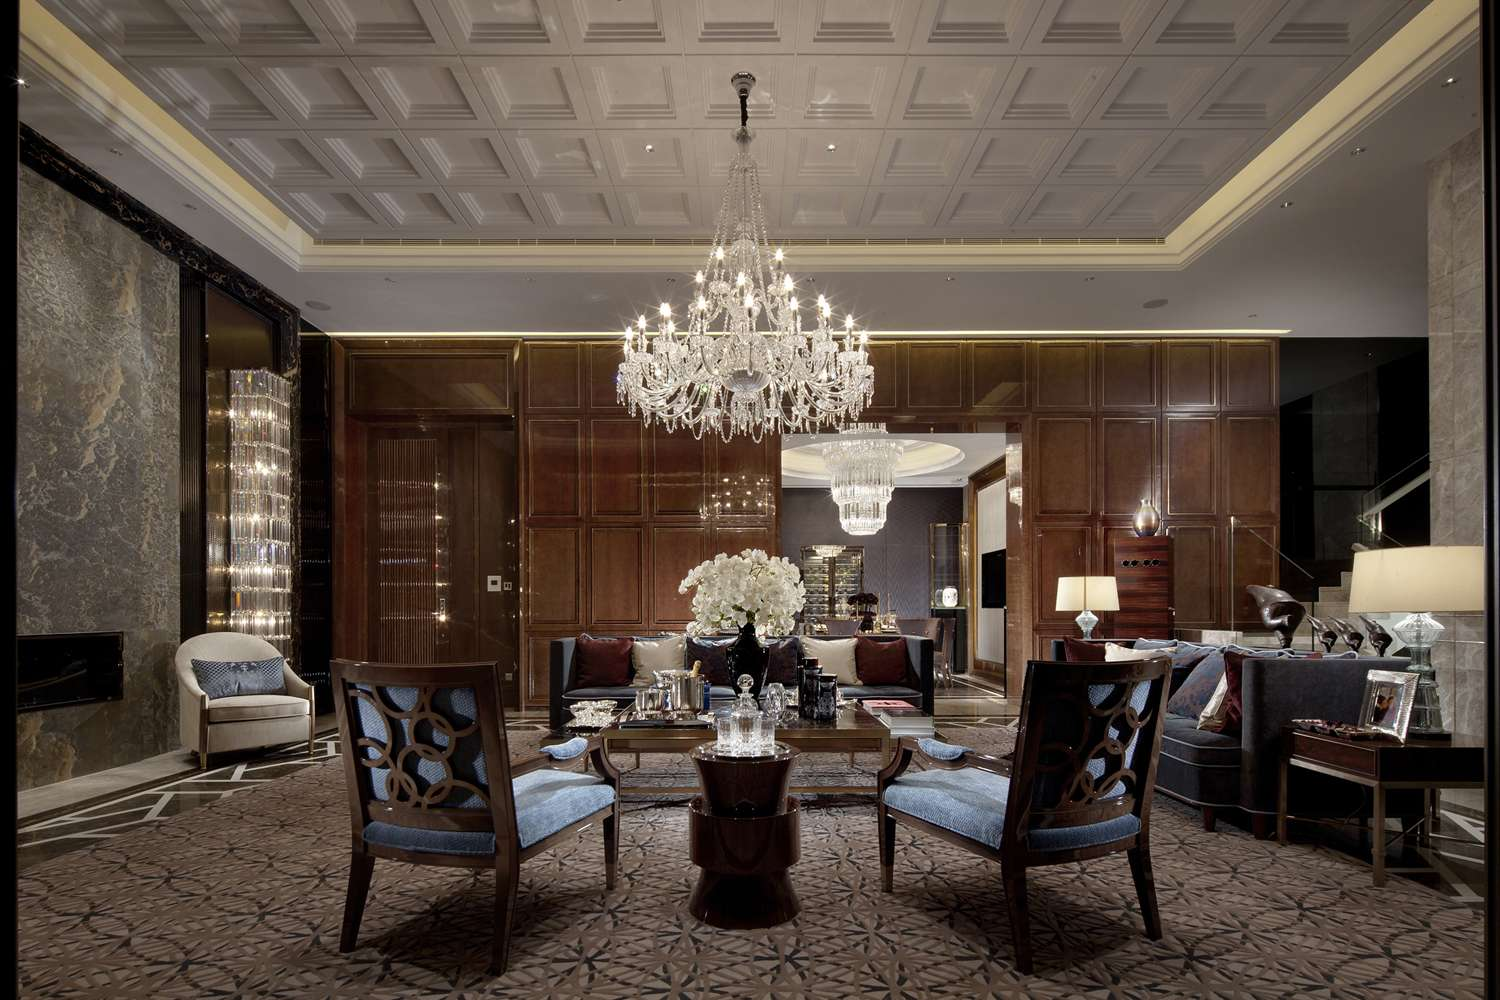 Walls Chandelier Formal Sitting Steve Leung Interior Design Ideas